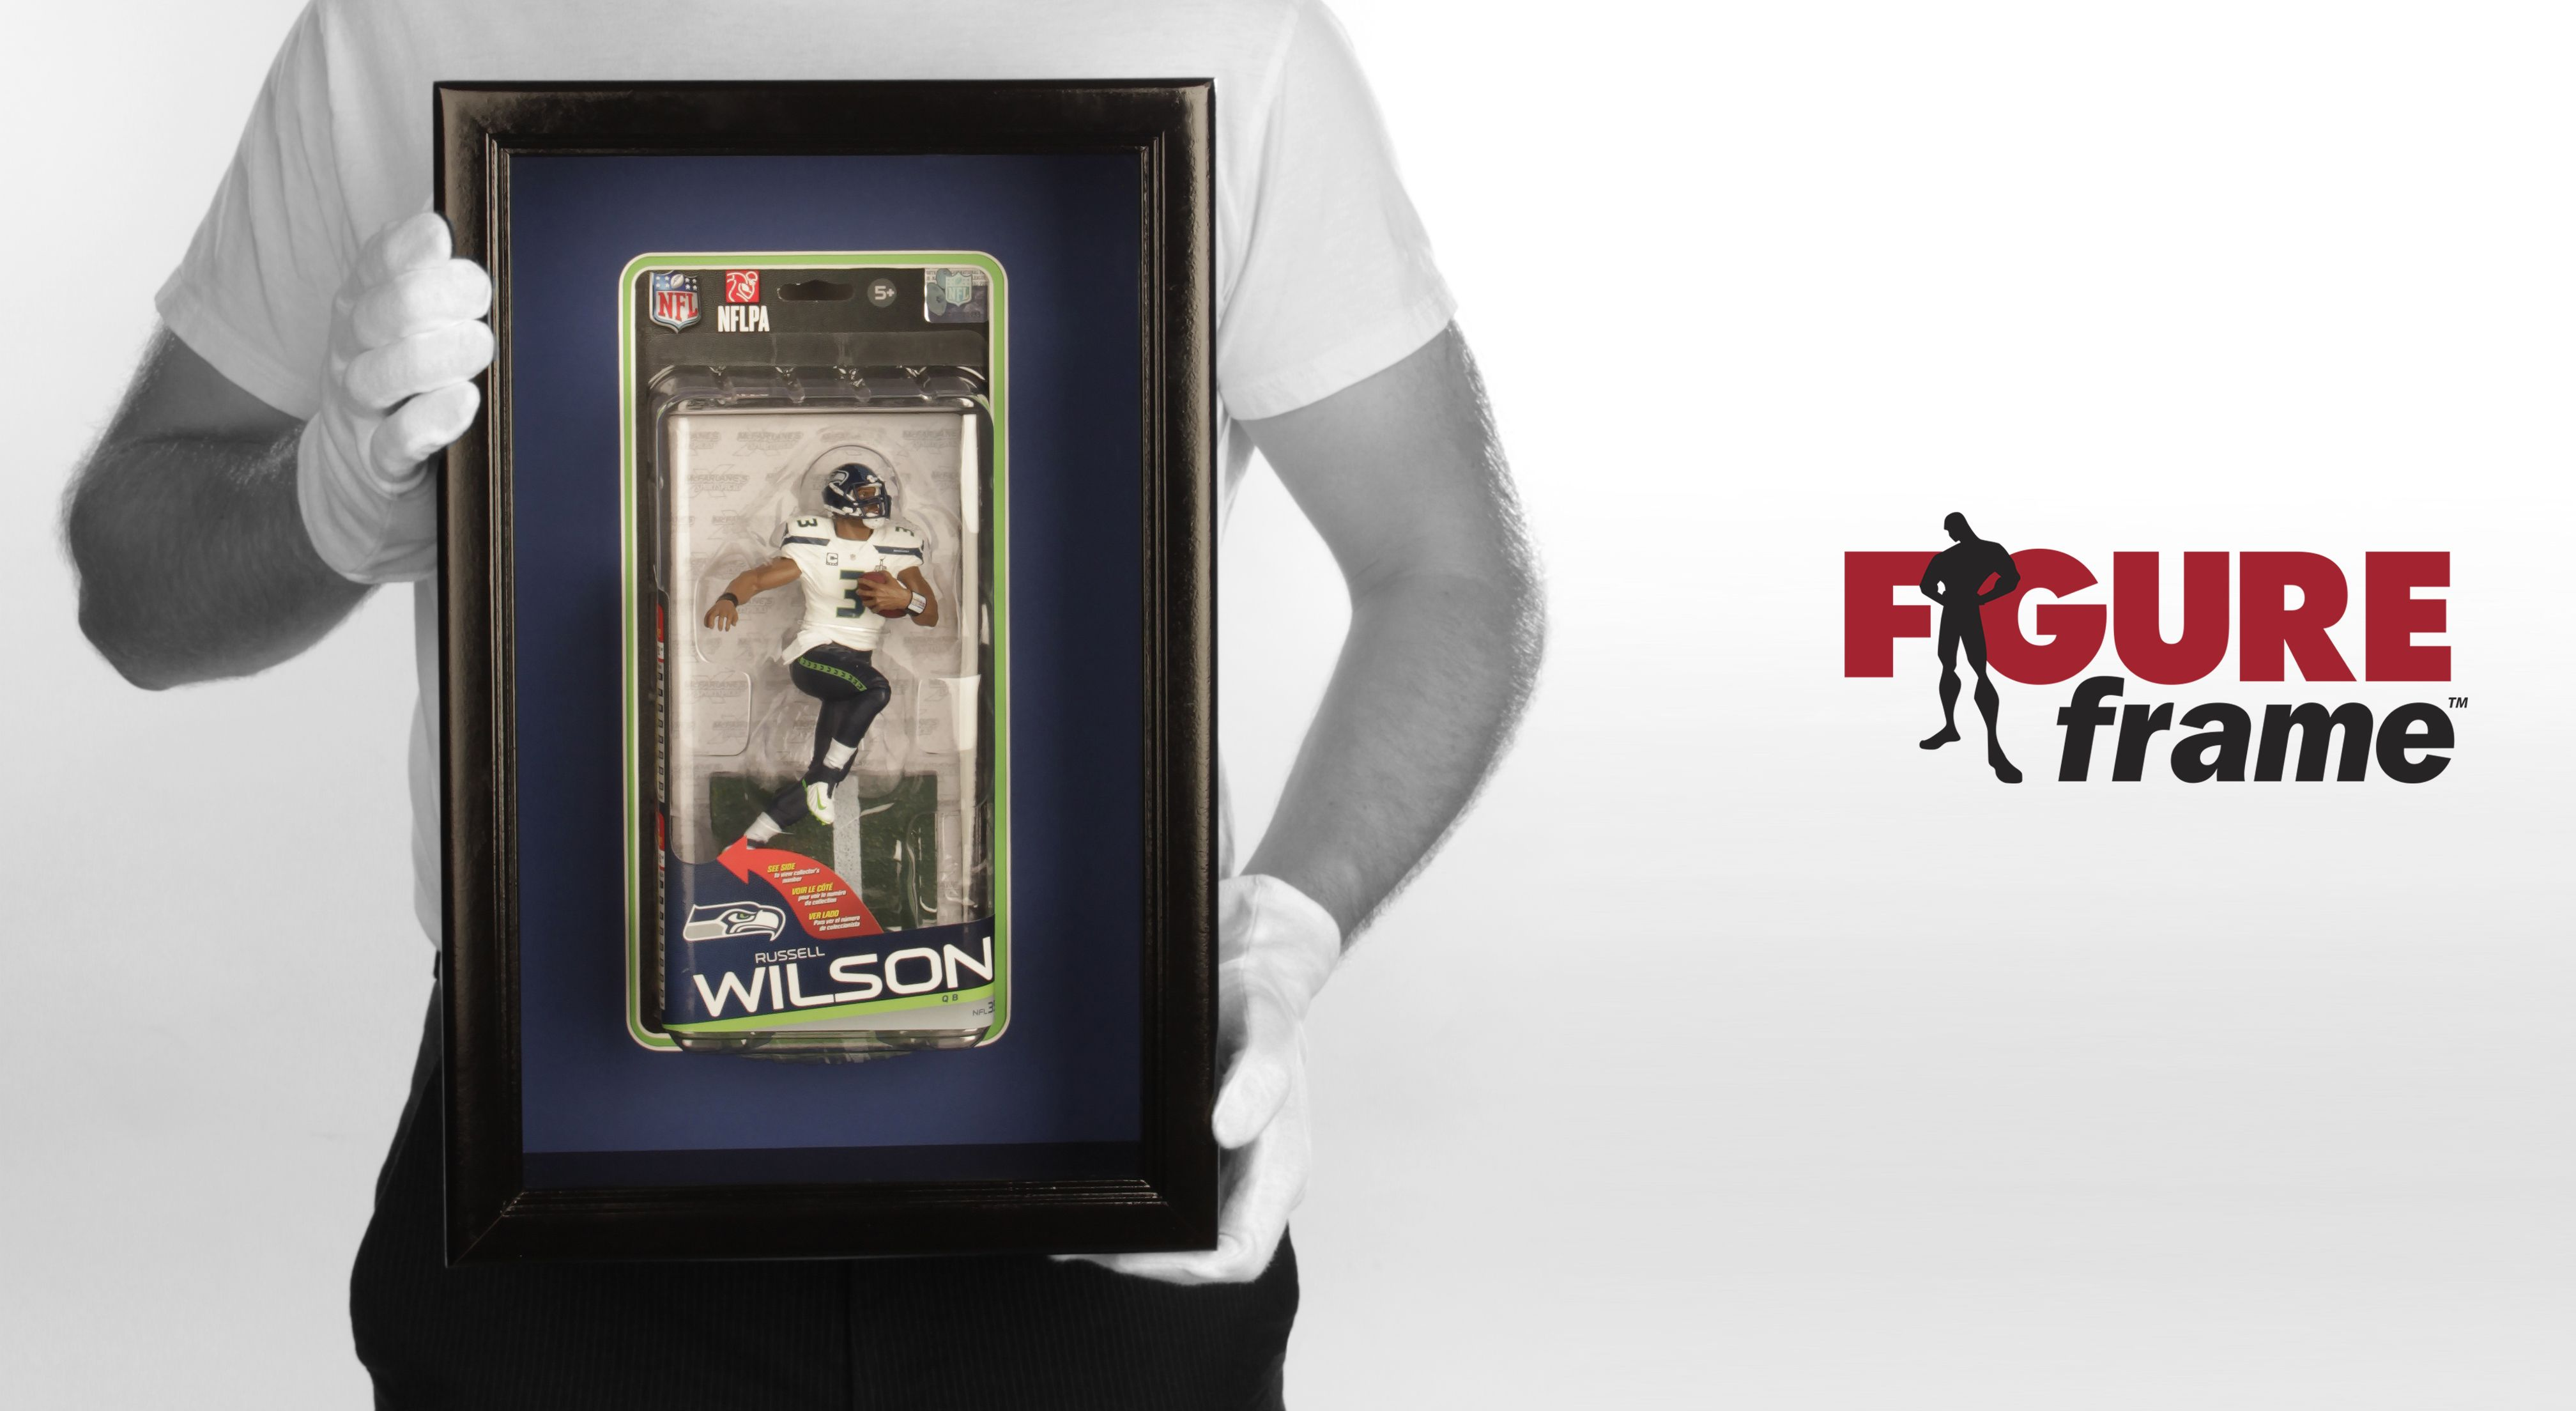 Figure Frame with a Russell Wilson action figure. We can make the frame for any NFL player from the same series!